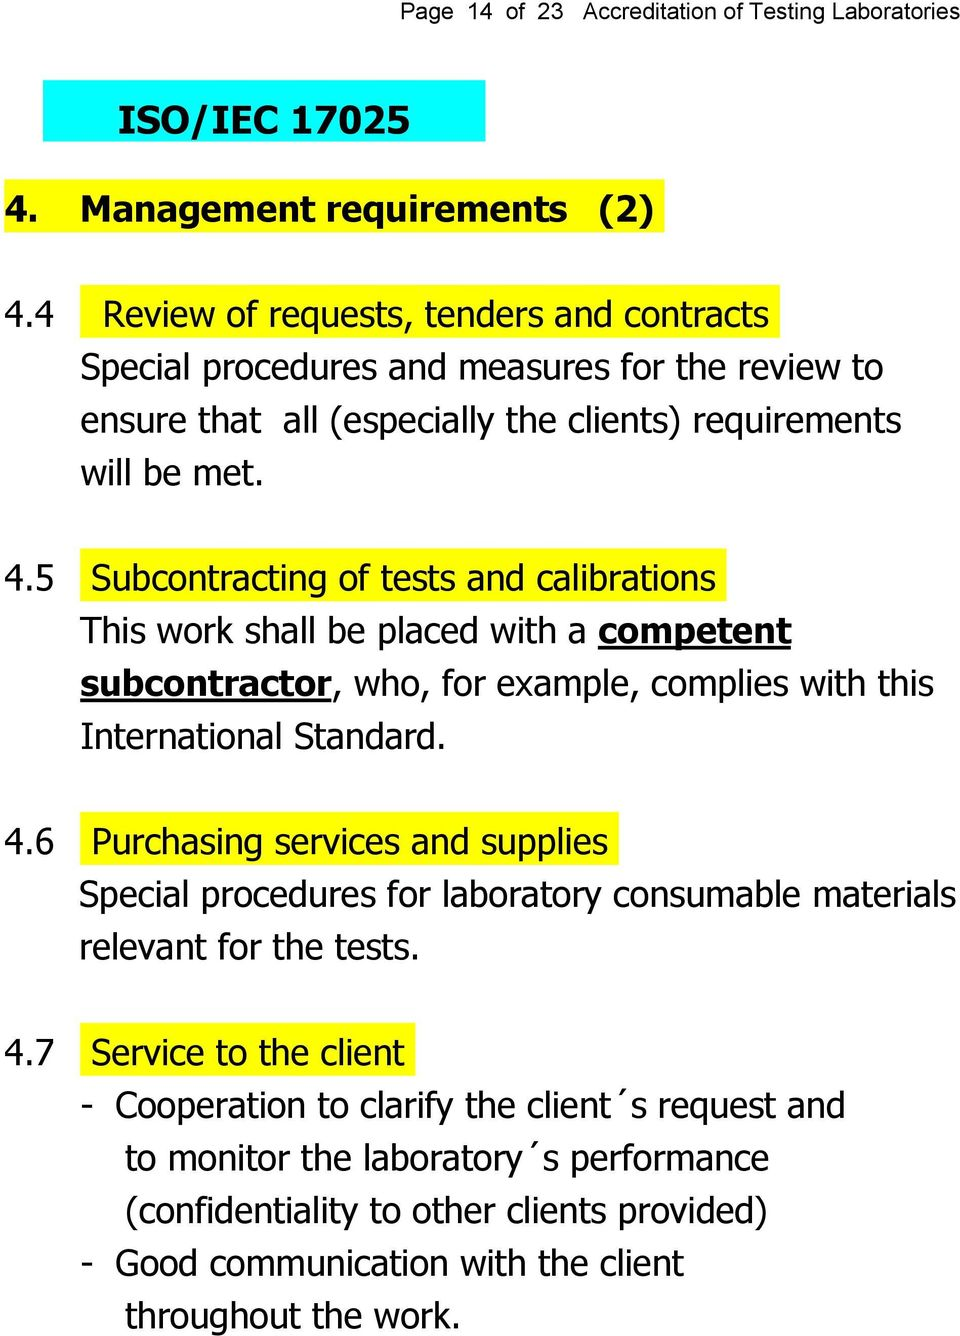 5 Subcontracting of tests and calibrations This work shall be placed with a competent subcontractor, who, for example, complies with this International Standard. 4.